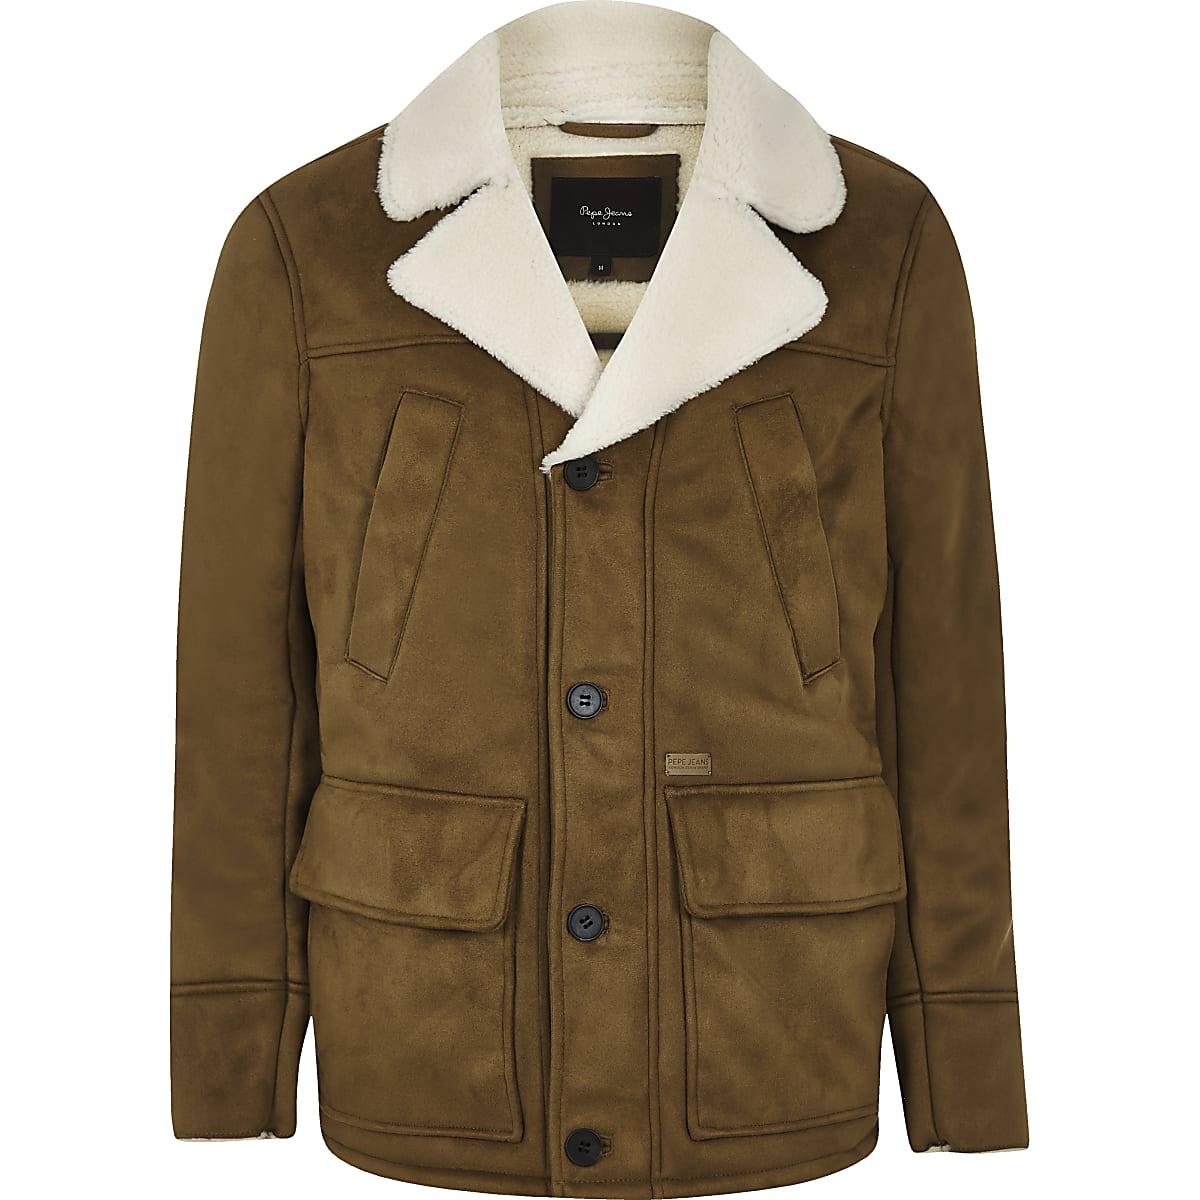 Pepe Jeans brown borg line jacket